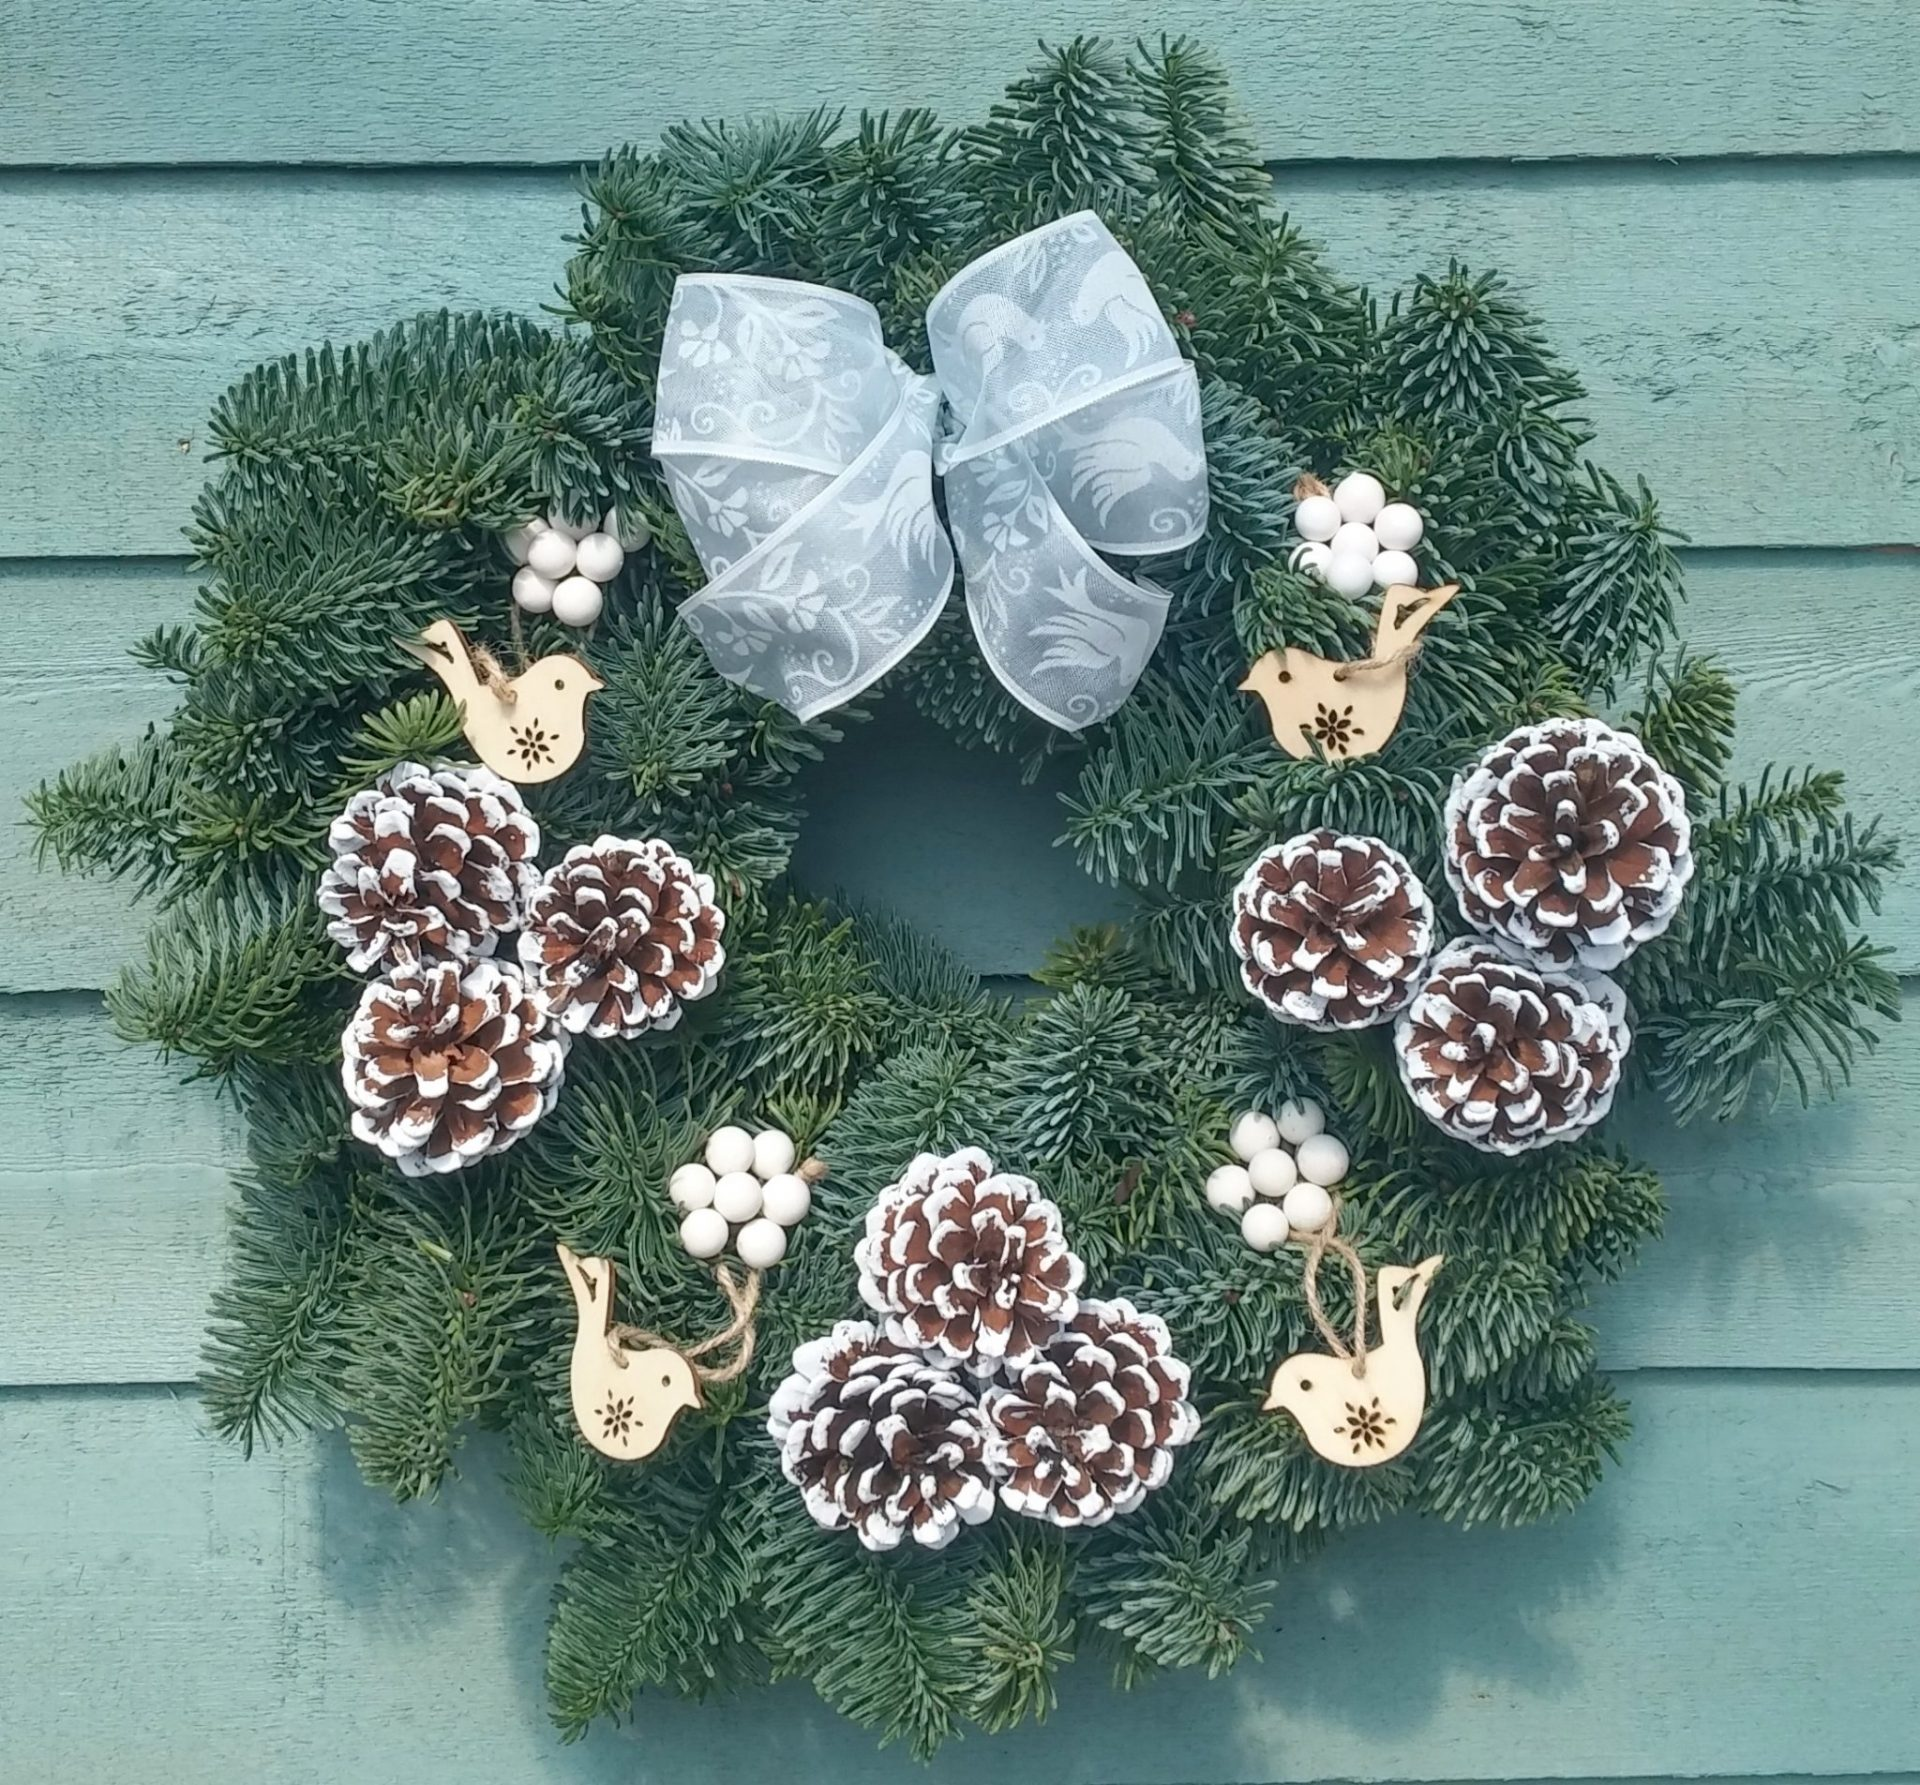 Nordic Christmas Wreath - Fresh Wreaths from Send Me a Christmas Tree